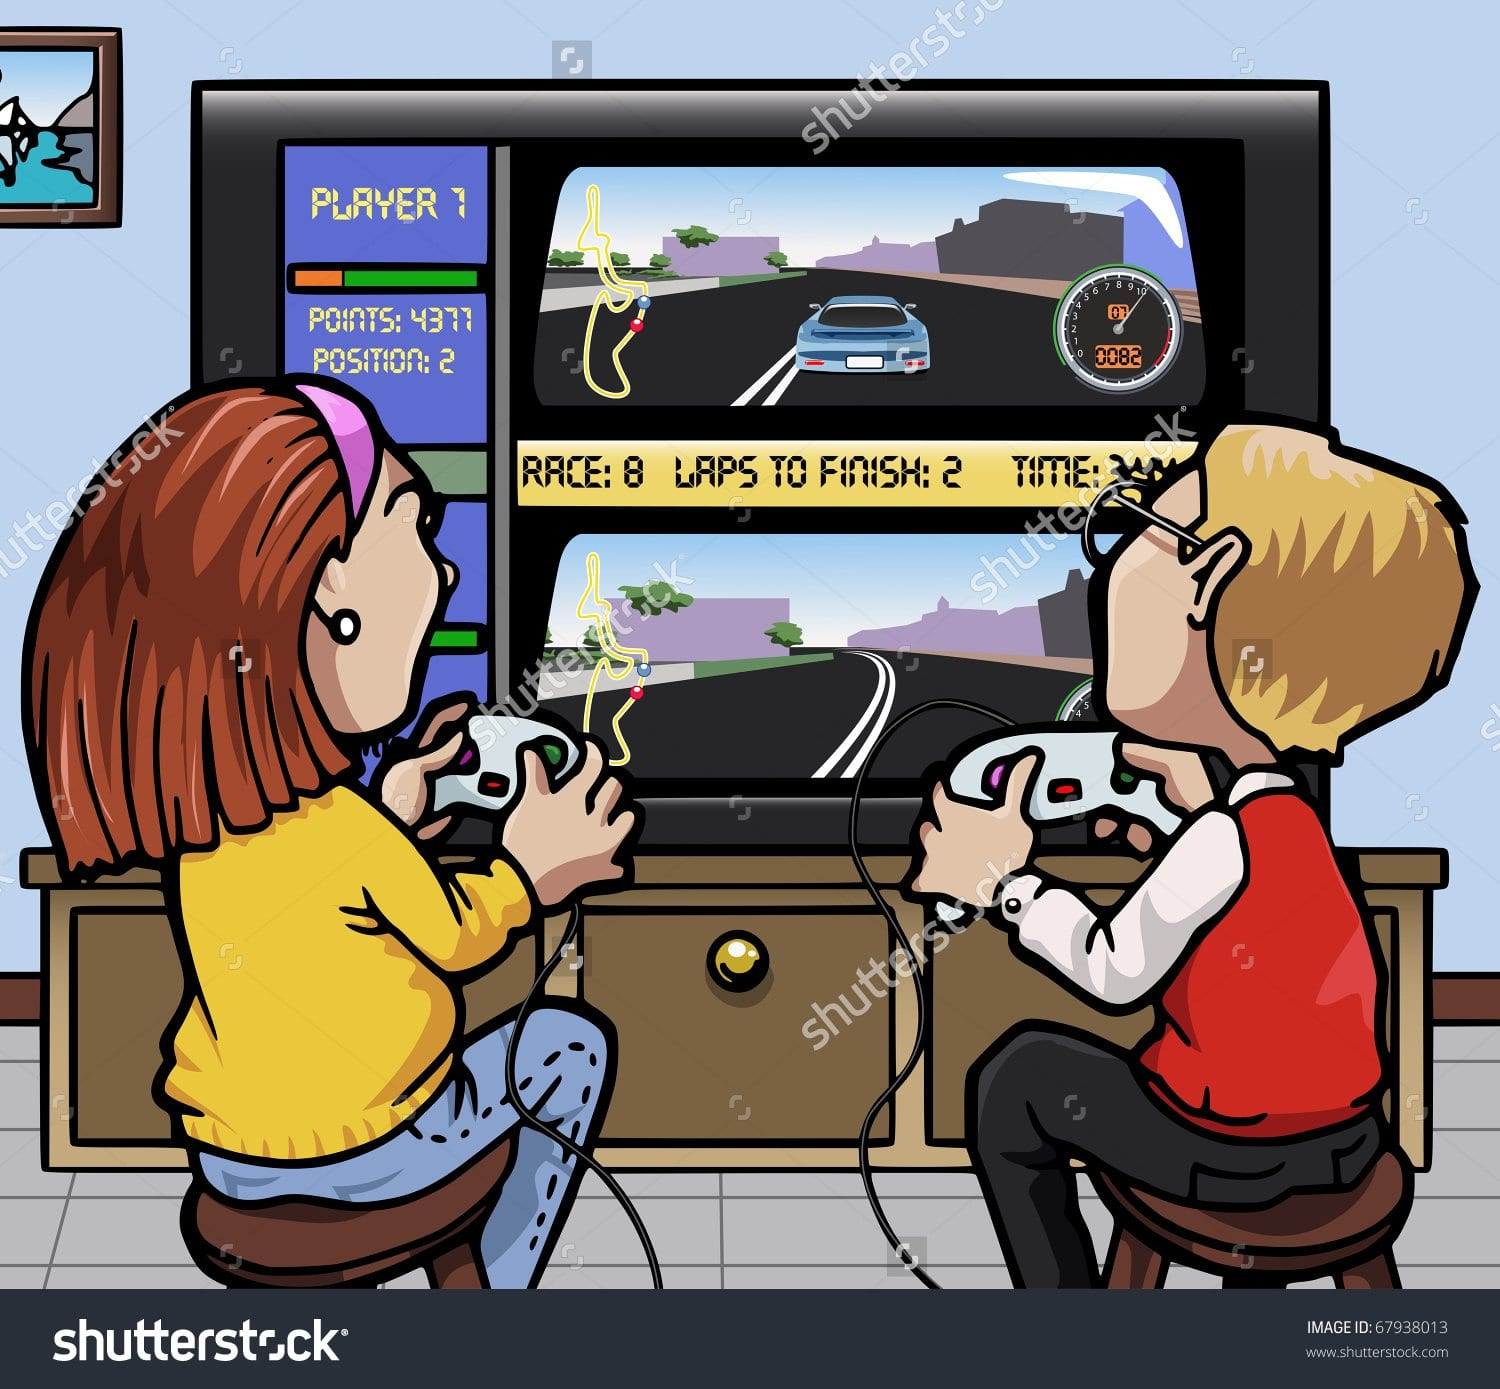 stock-vector-cartoon-style-illustration-two-kids-one-girl-one-boy-playing-a-car-racing-video-game-on-a-huge-67938013